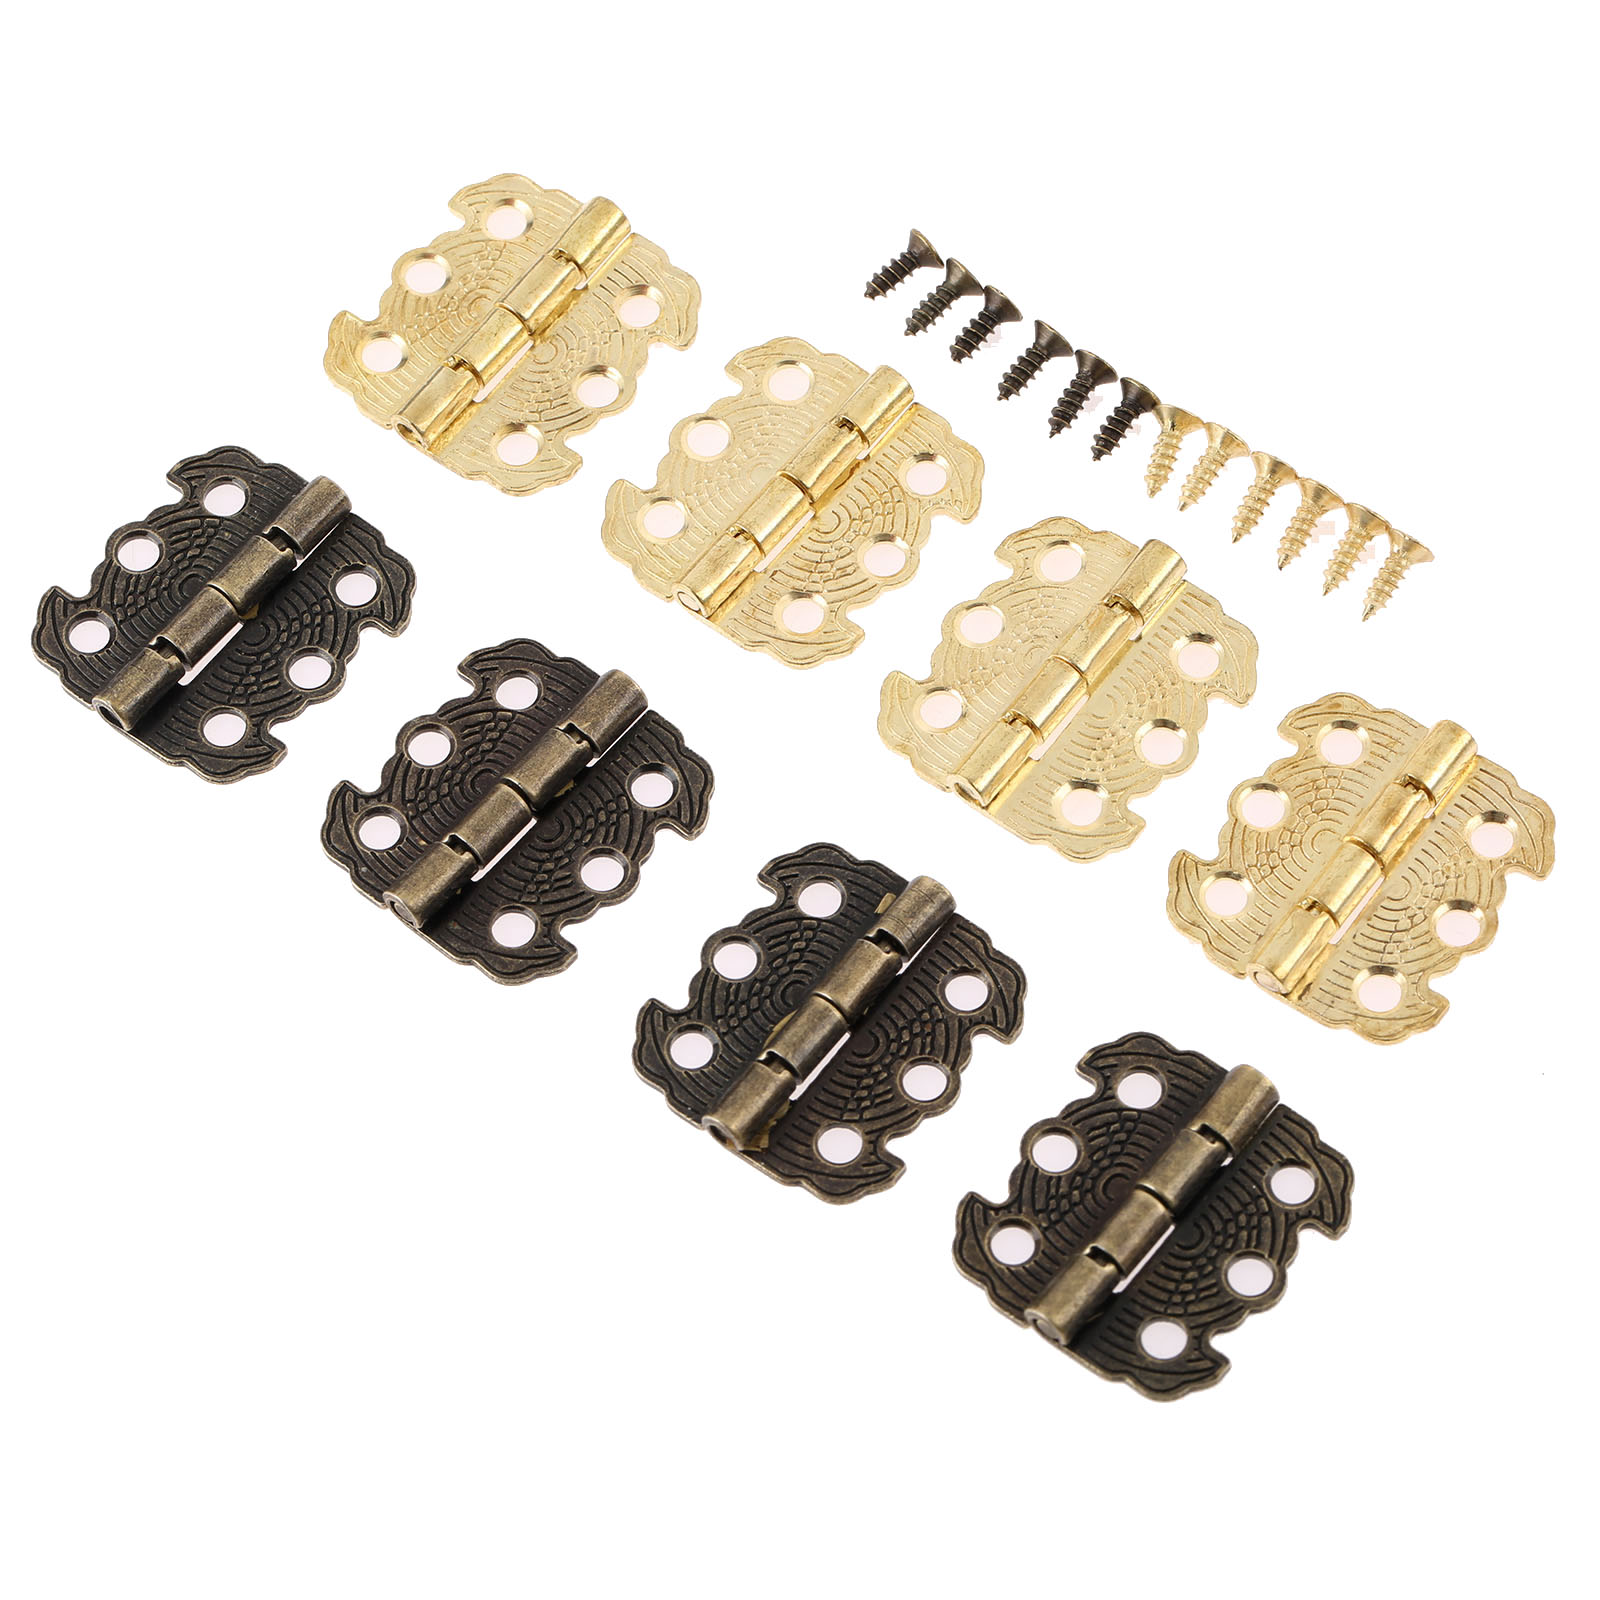 4Pcs 29*27mm Cabinet Hinges Furniture Accessories Jewelry Boxes Small Hinge Furniture Fittings For Cupboard Cabinet Bronze/Gold probrico soft close kitchen cabinet hinges 5 pair chr083hb concealed cupboard door hinge furniture hardware accessories fittings